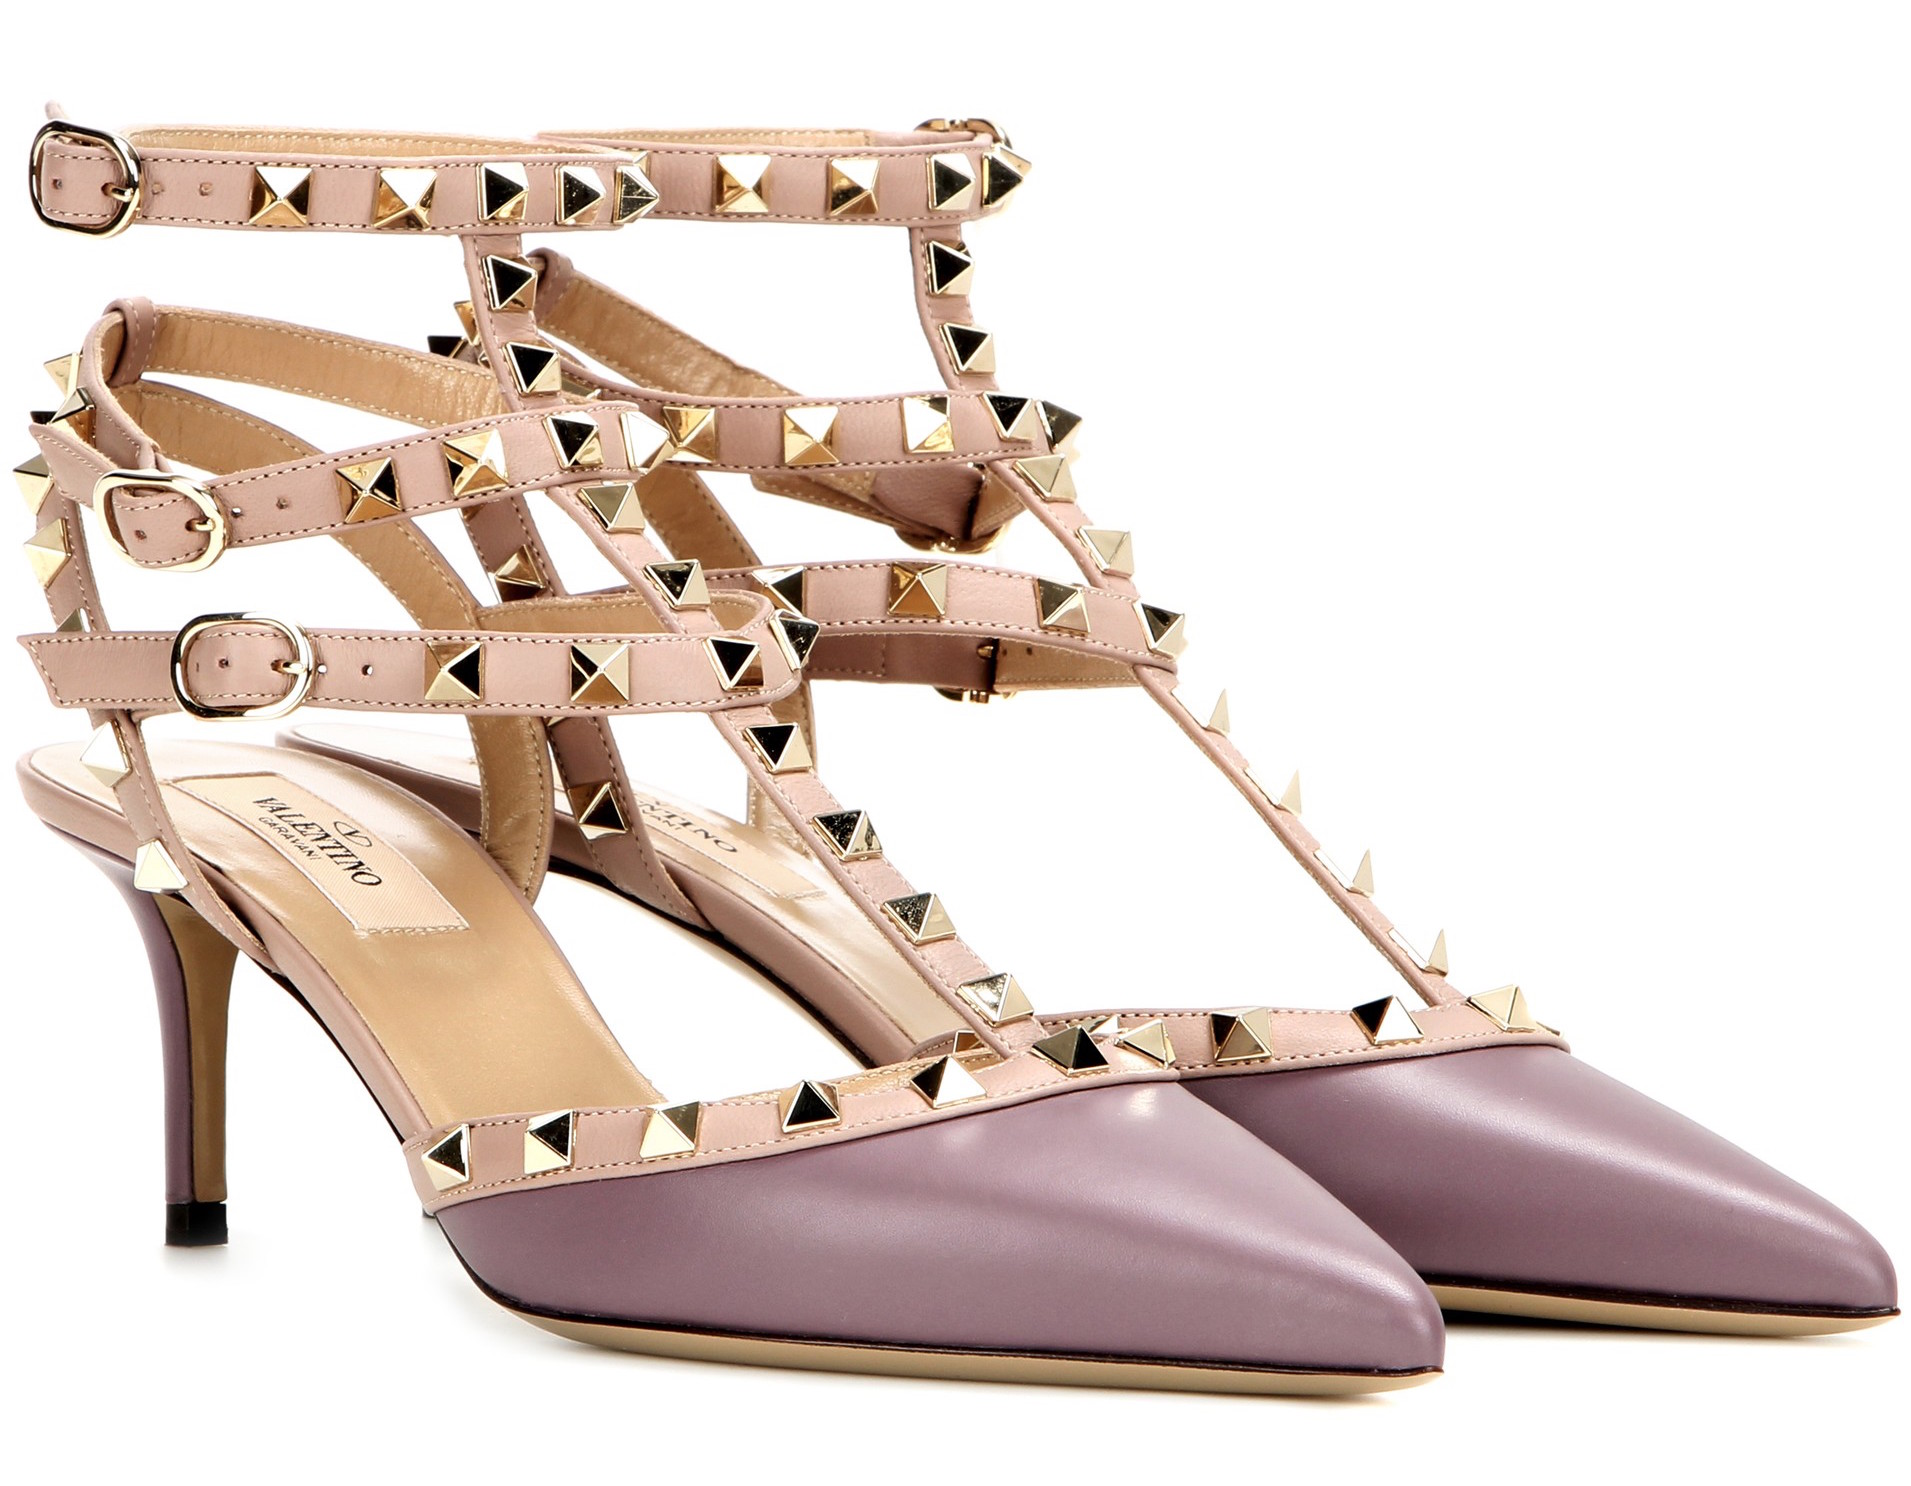 14 New Valentino Rockstud Shoes For Summer 2016